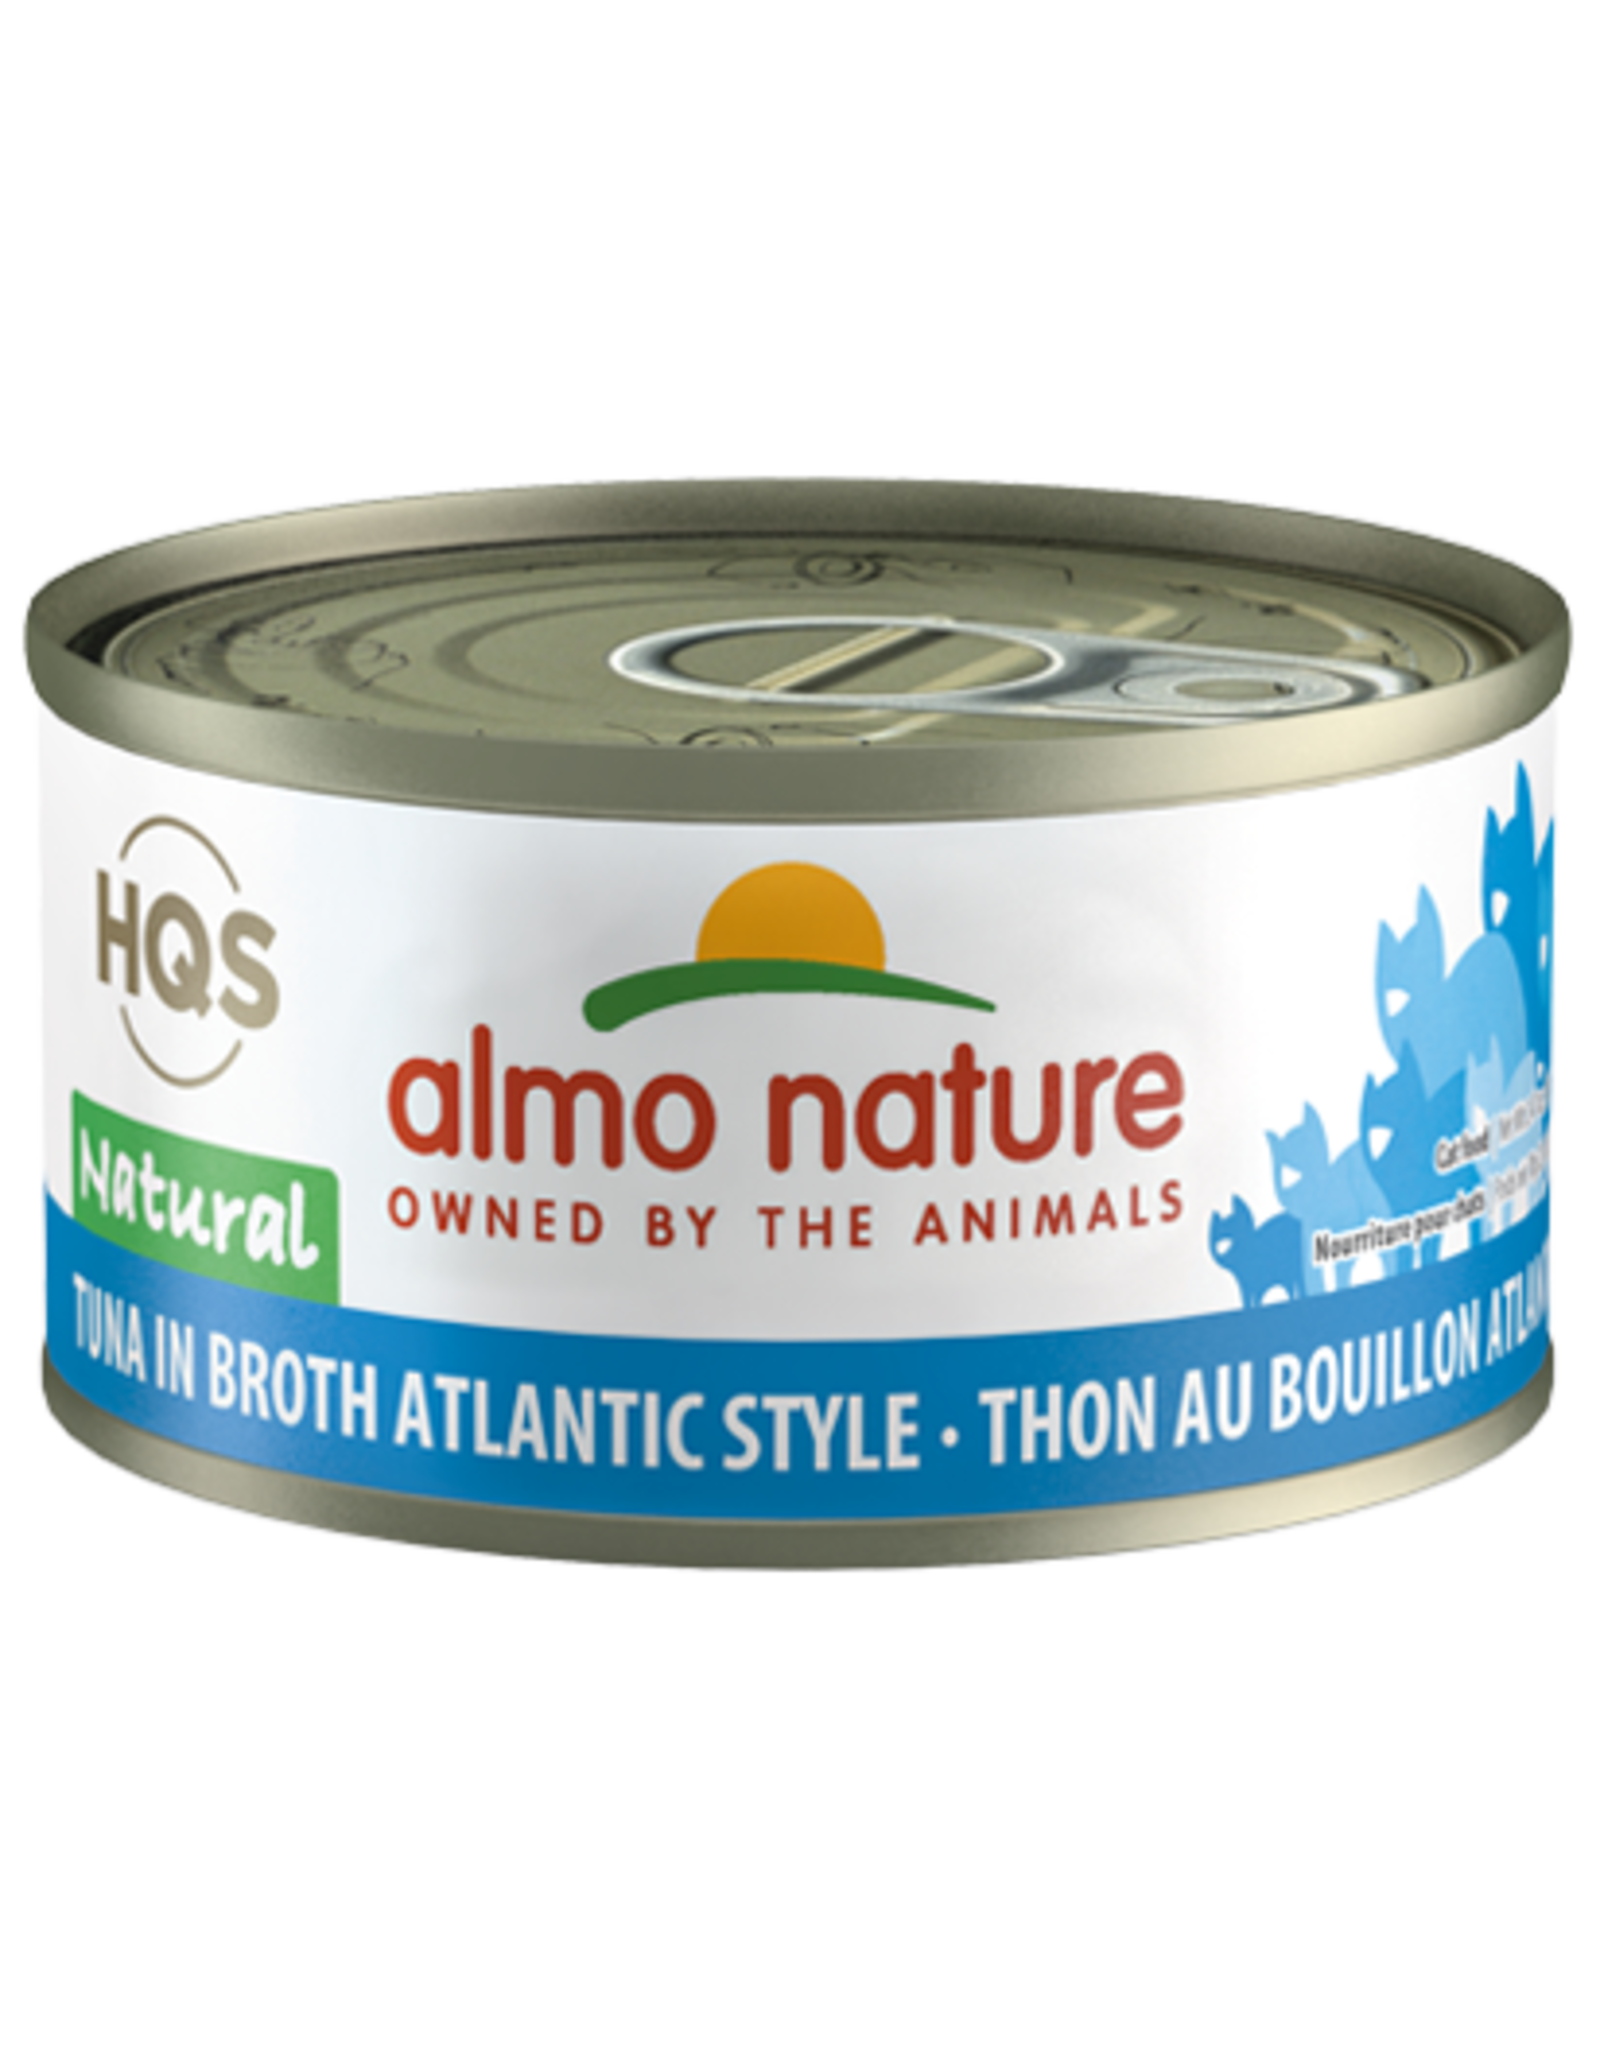 Almo Nature Almo Nature HQS Natural Wet Cat Food Tuna in Broth Atlantic Style 2.47oz Can Grain Free